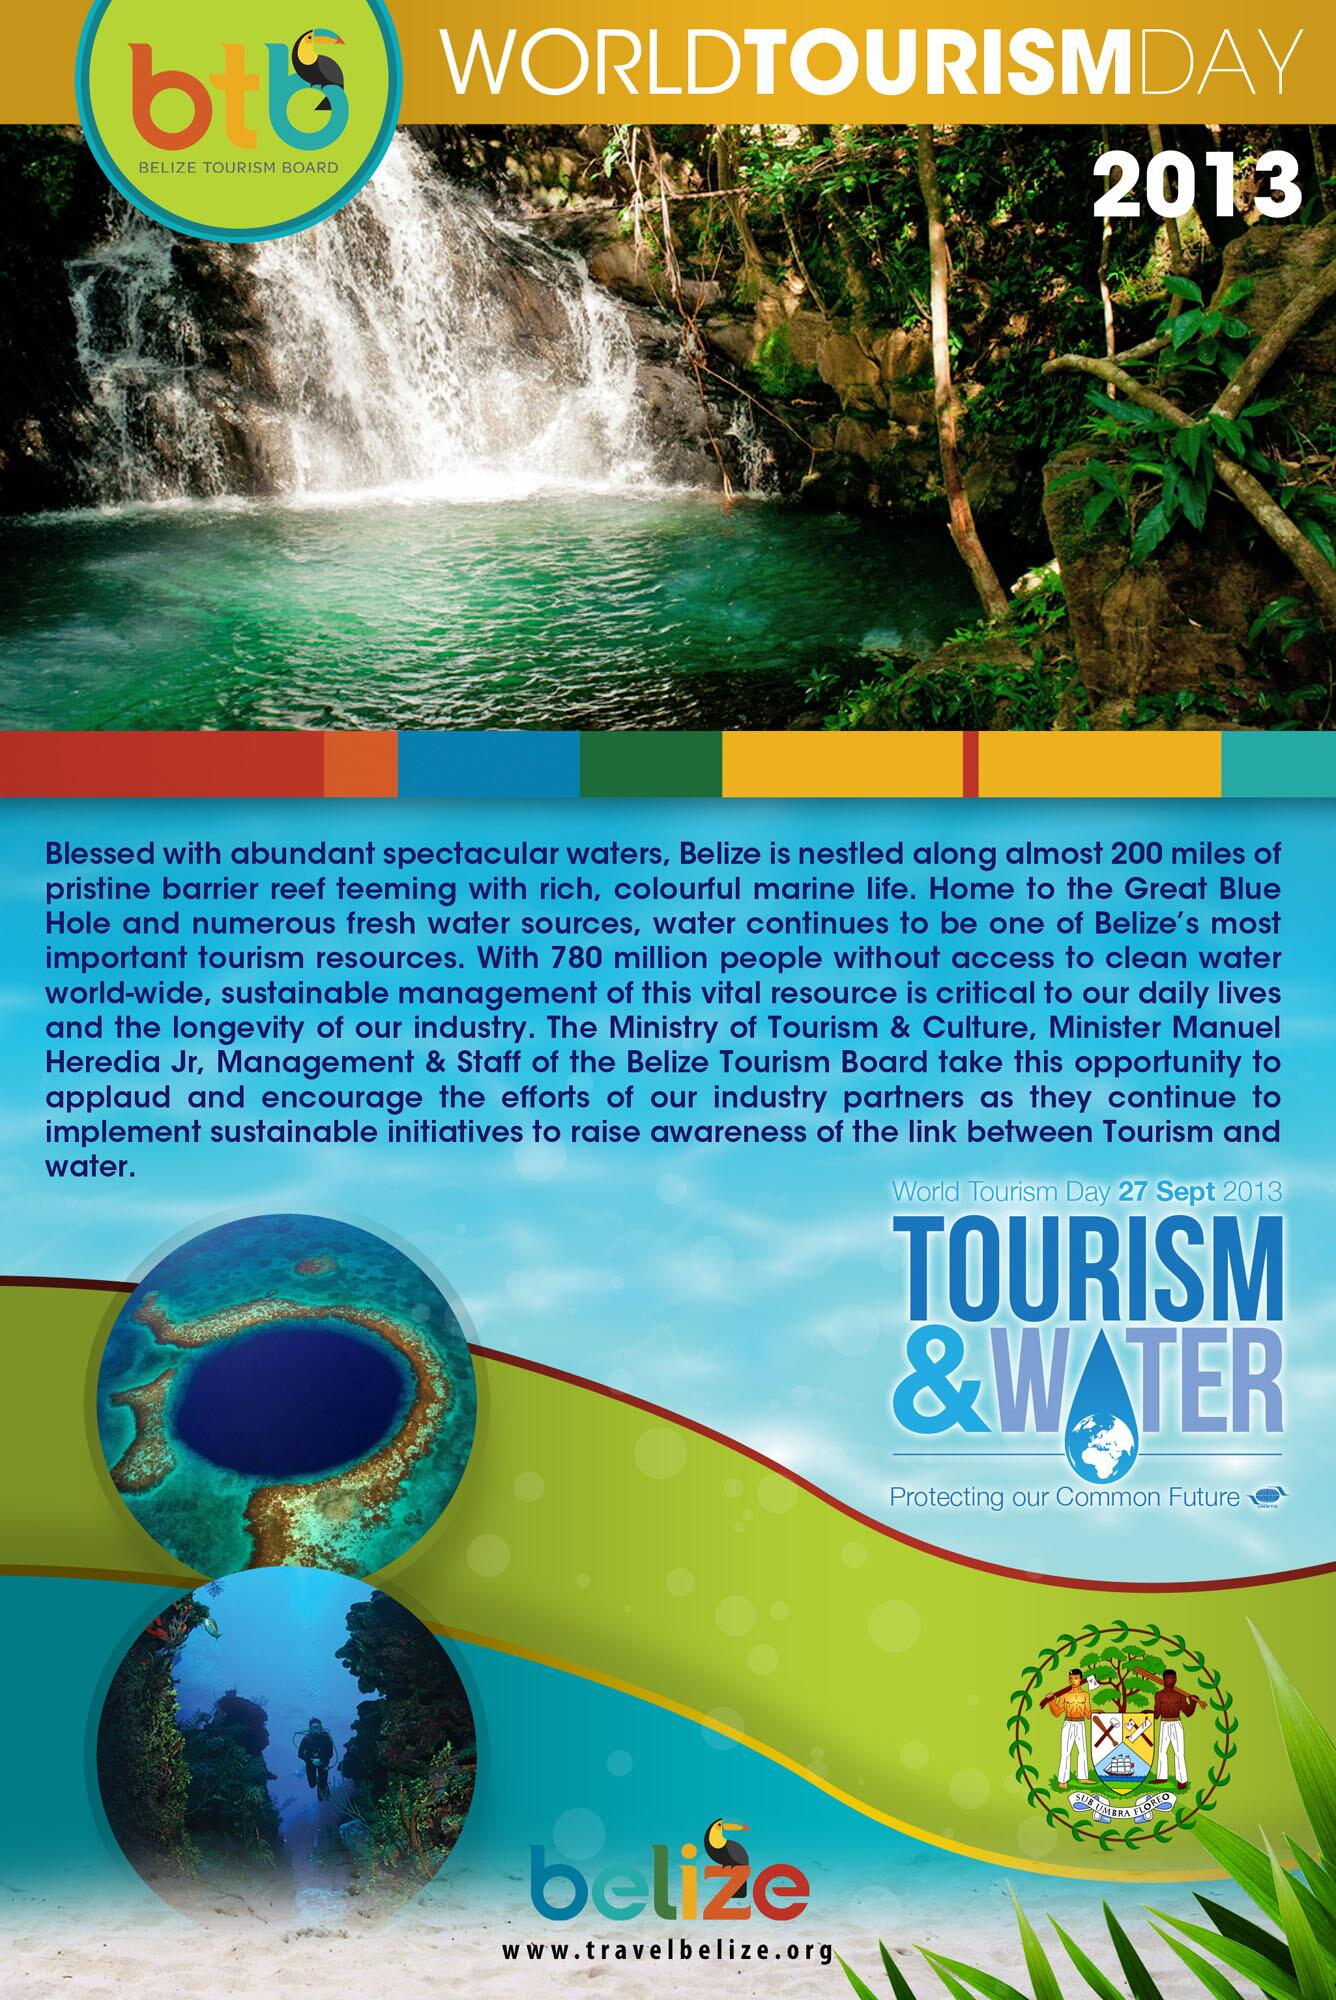 #WorldTourismDay2013 #Tourism&Water...help us protect our common future! http://t.co/8EiCdroi2y